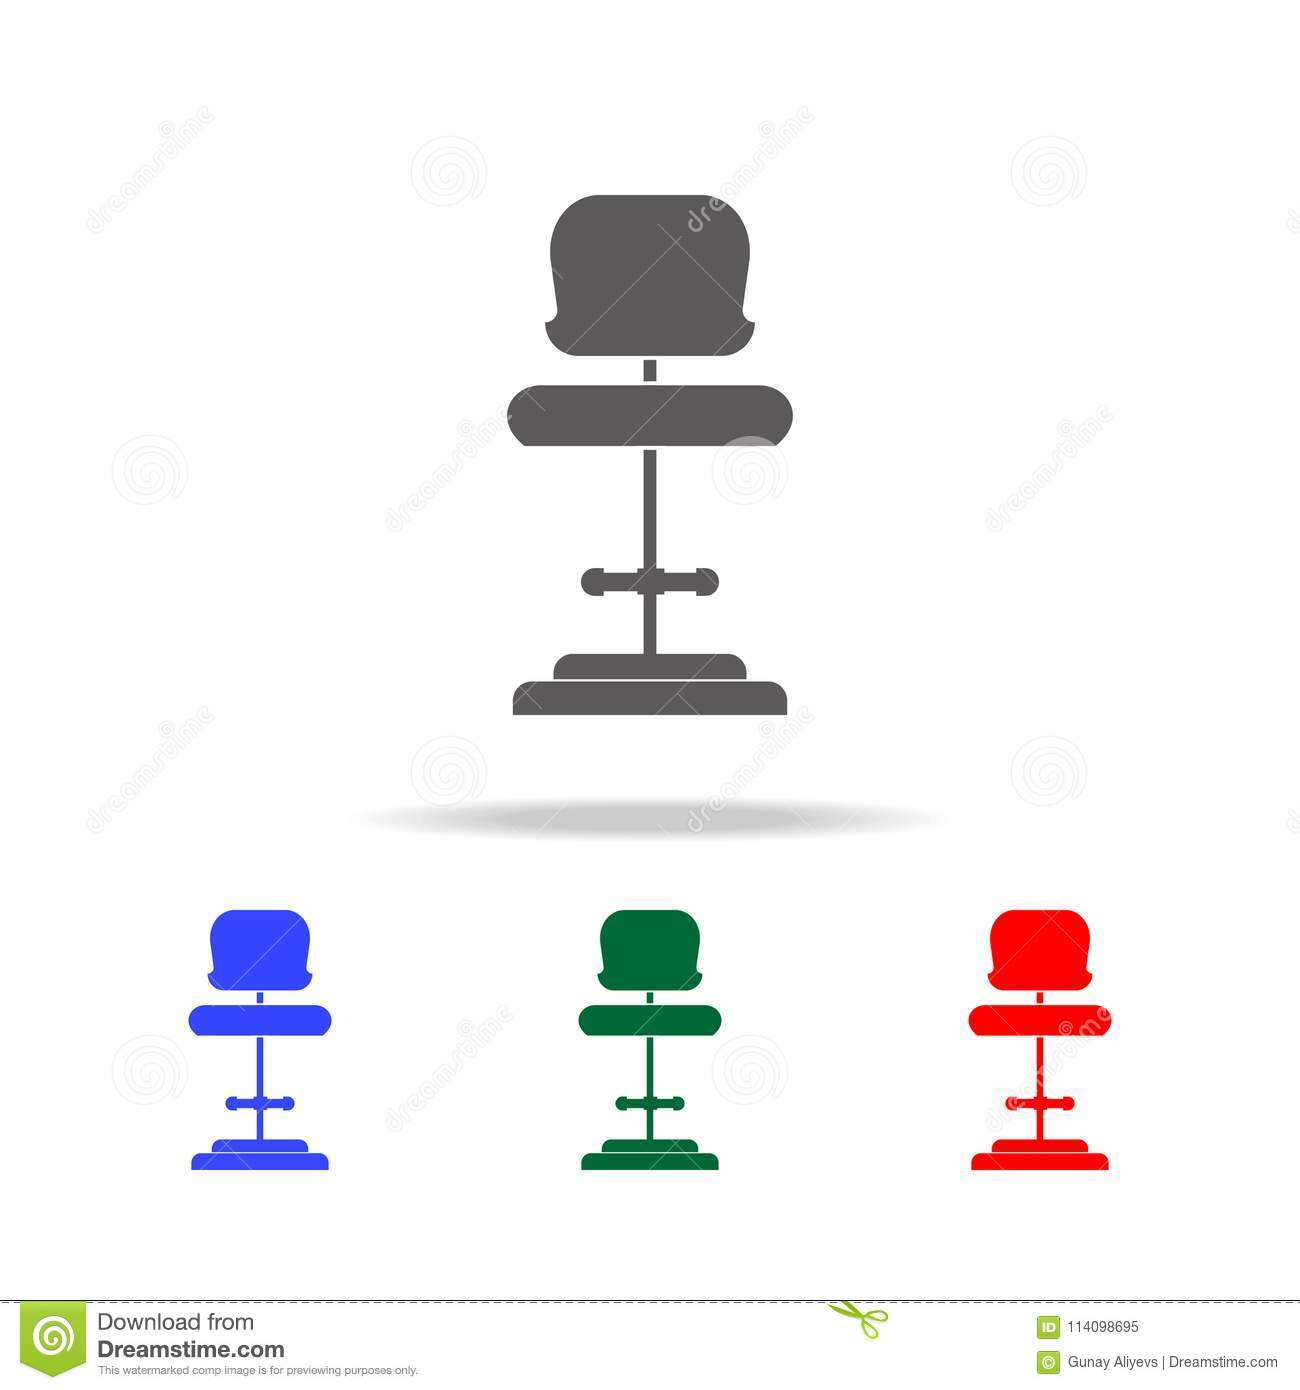 chair design icons cover hire bishop auckland high seat icon elements of disco and night life multi colored premium quality graphic simple for websites web